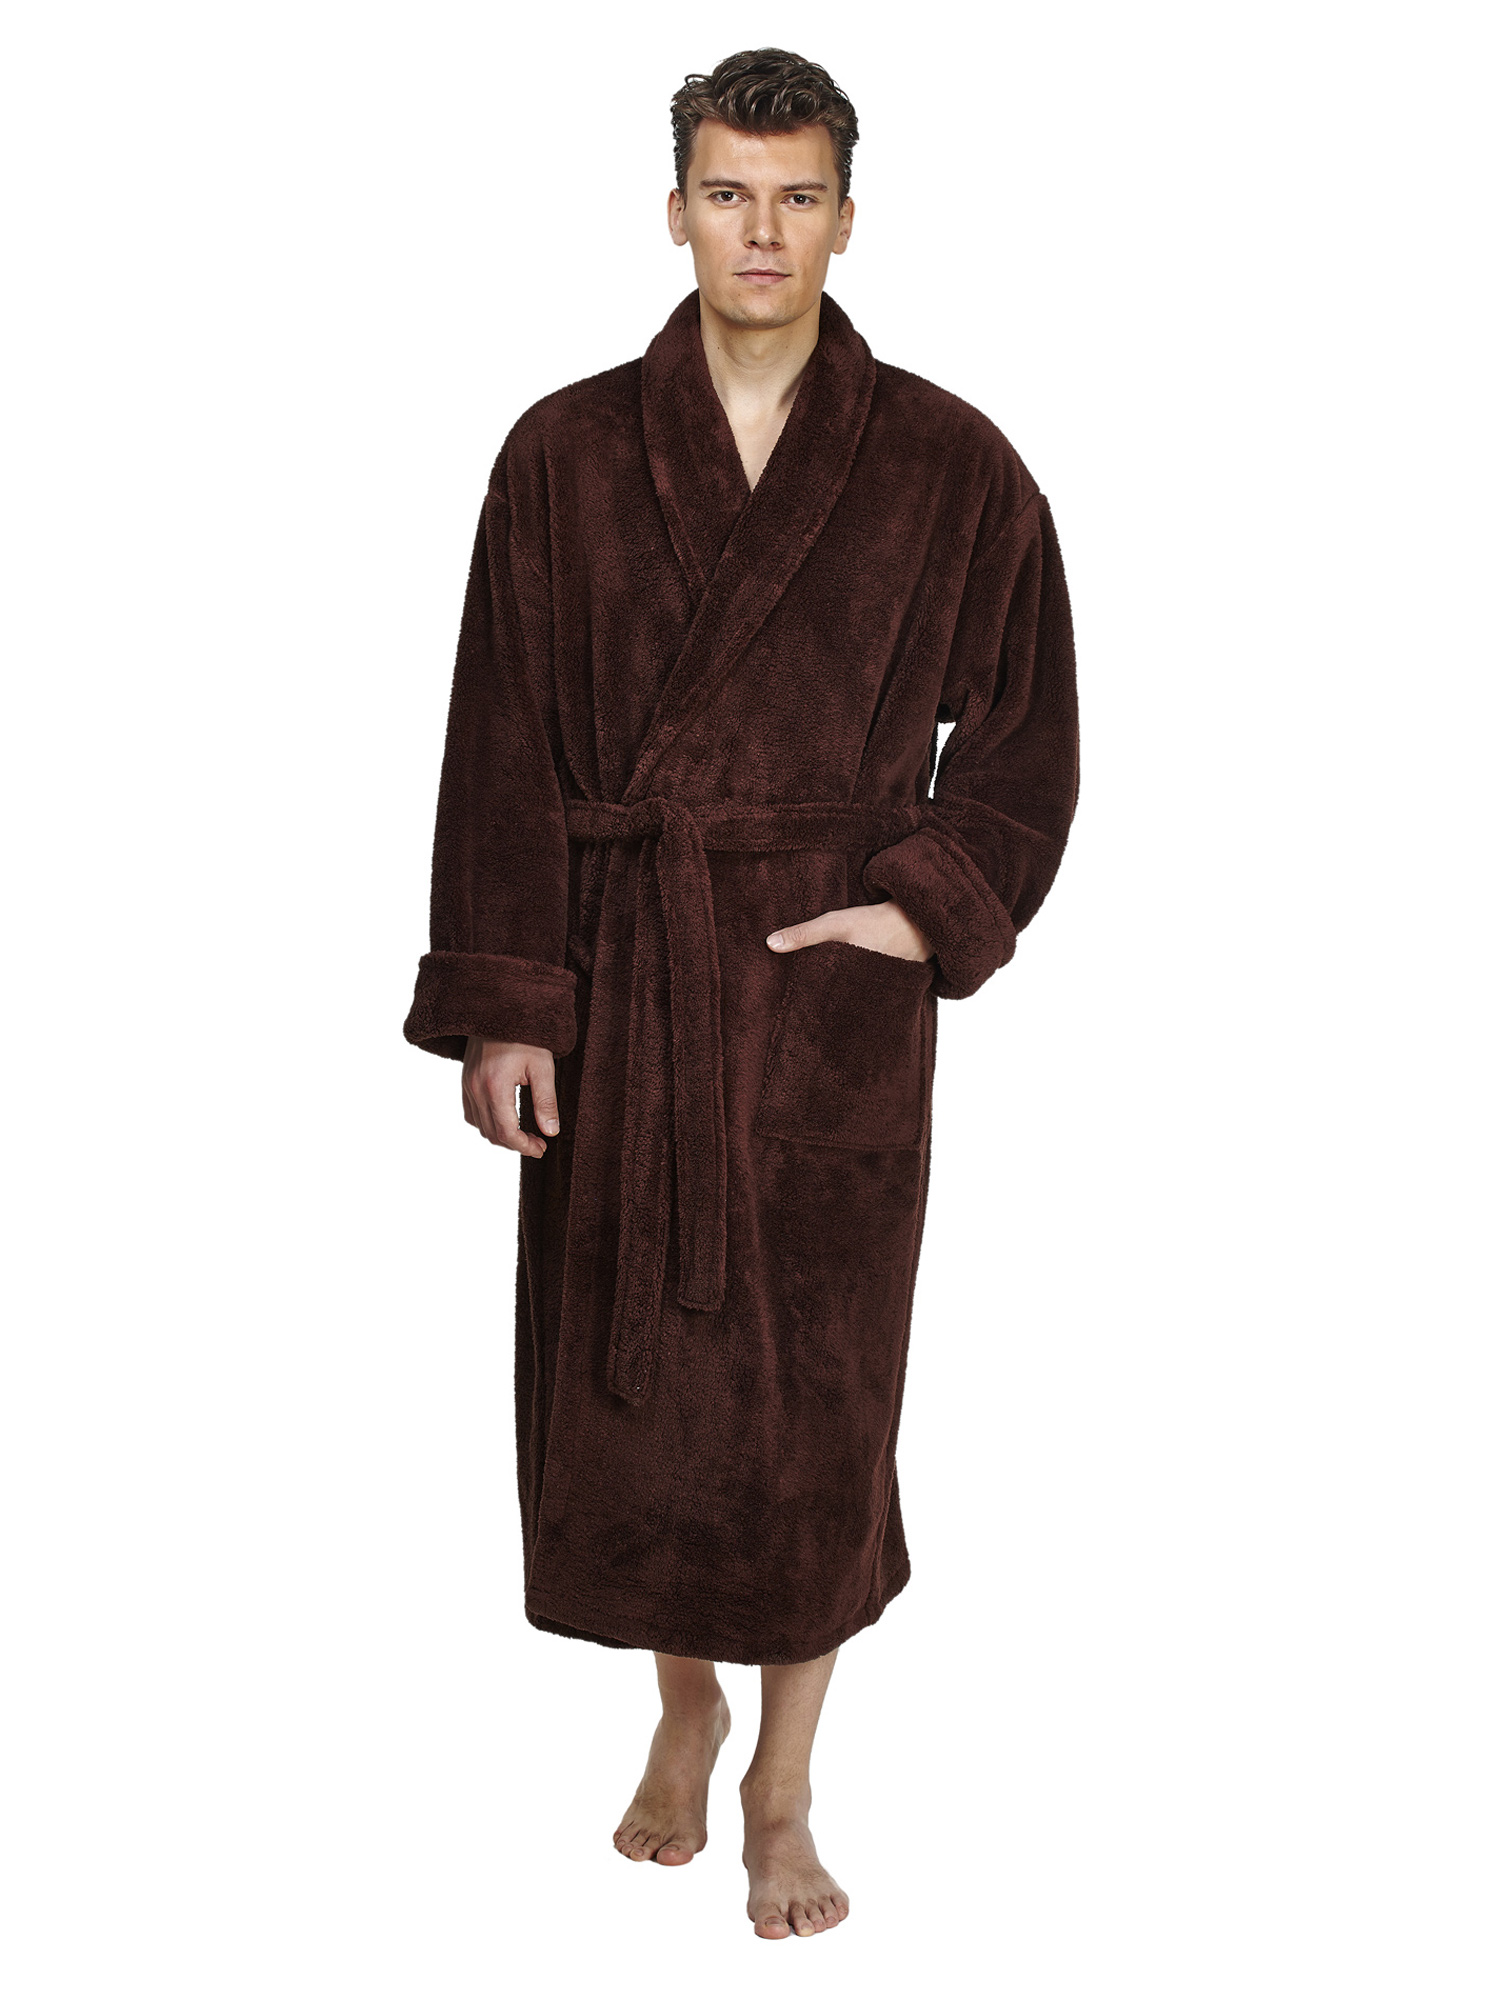 Men's Shawl Collar Fleece Plush Robe Turkish Bathrobe